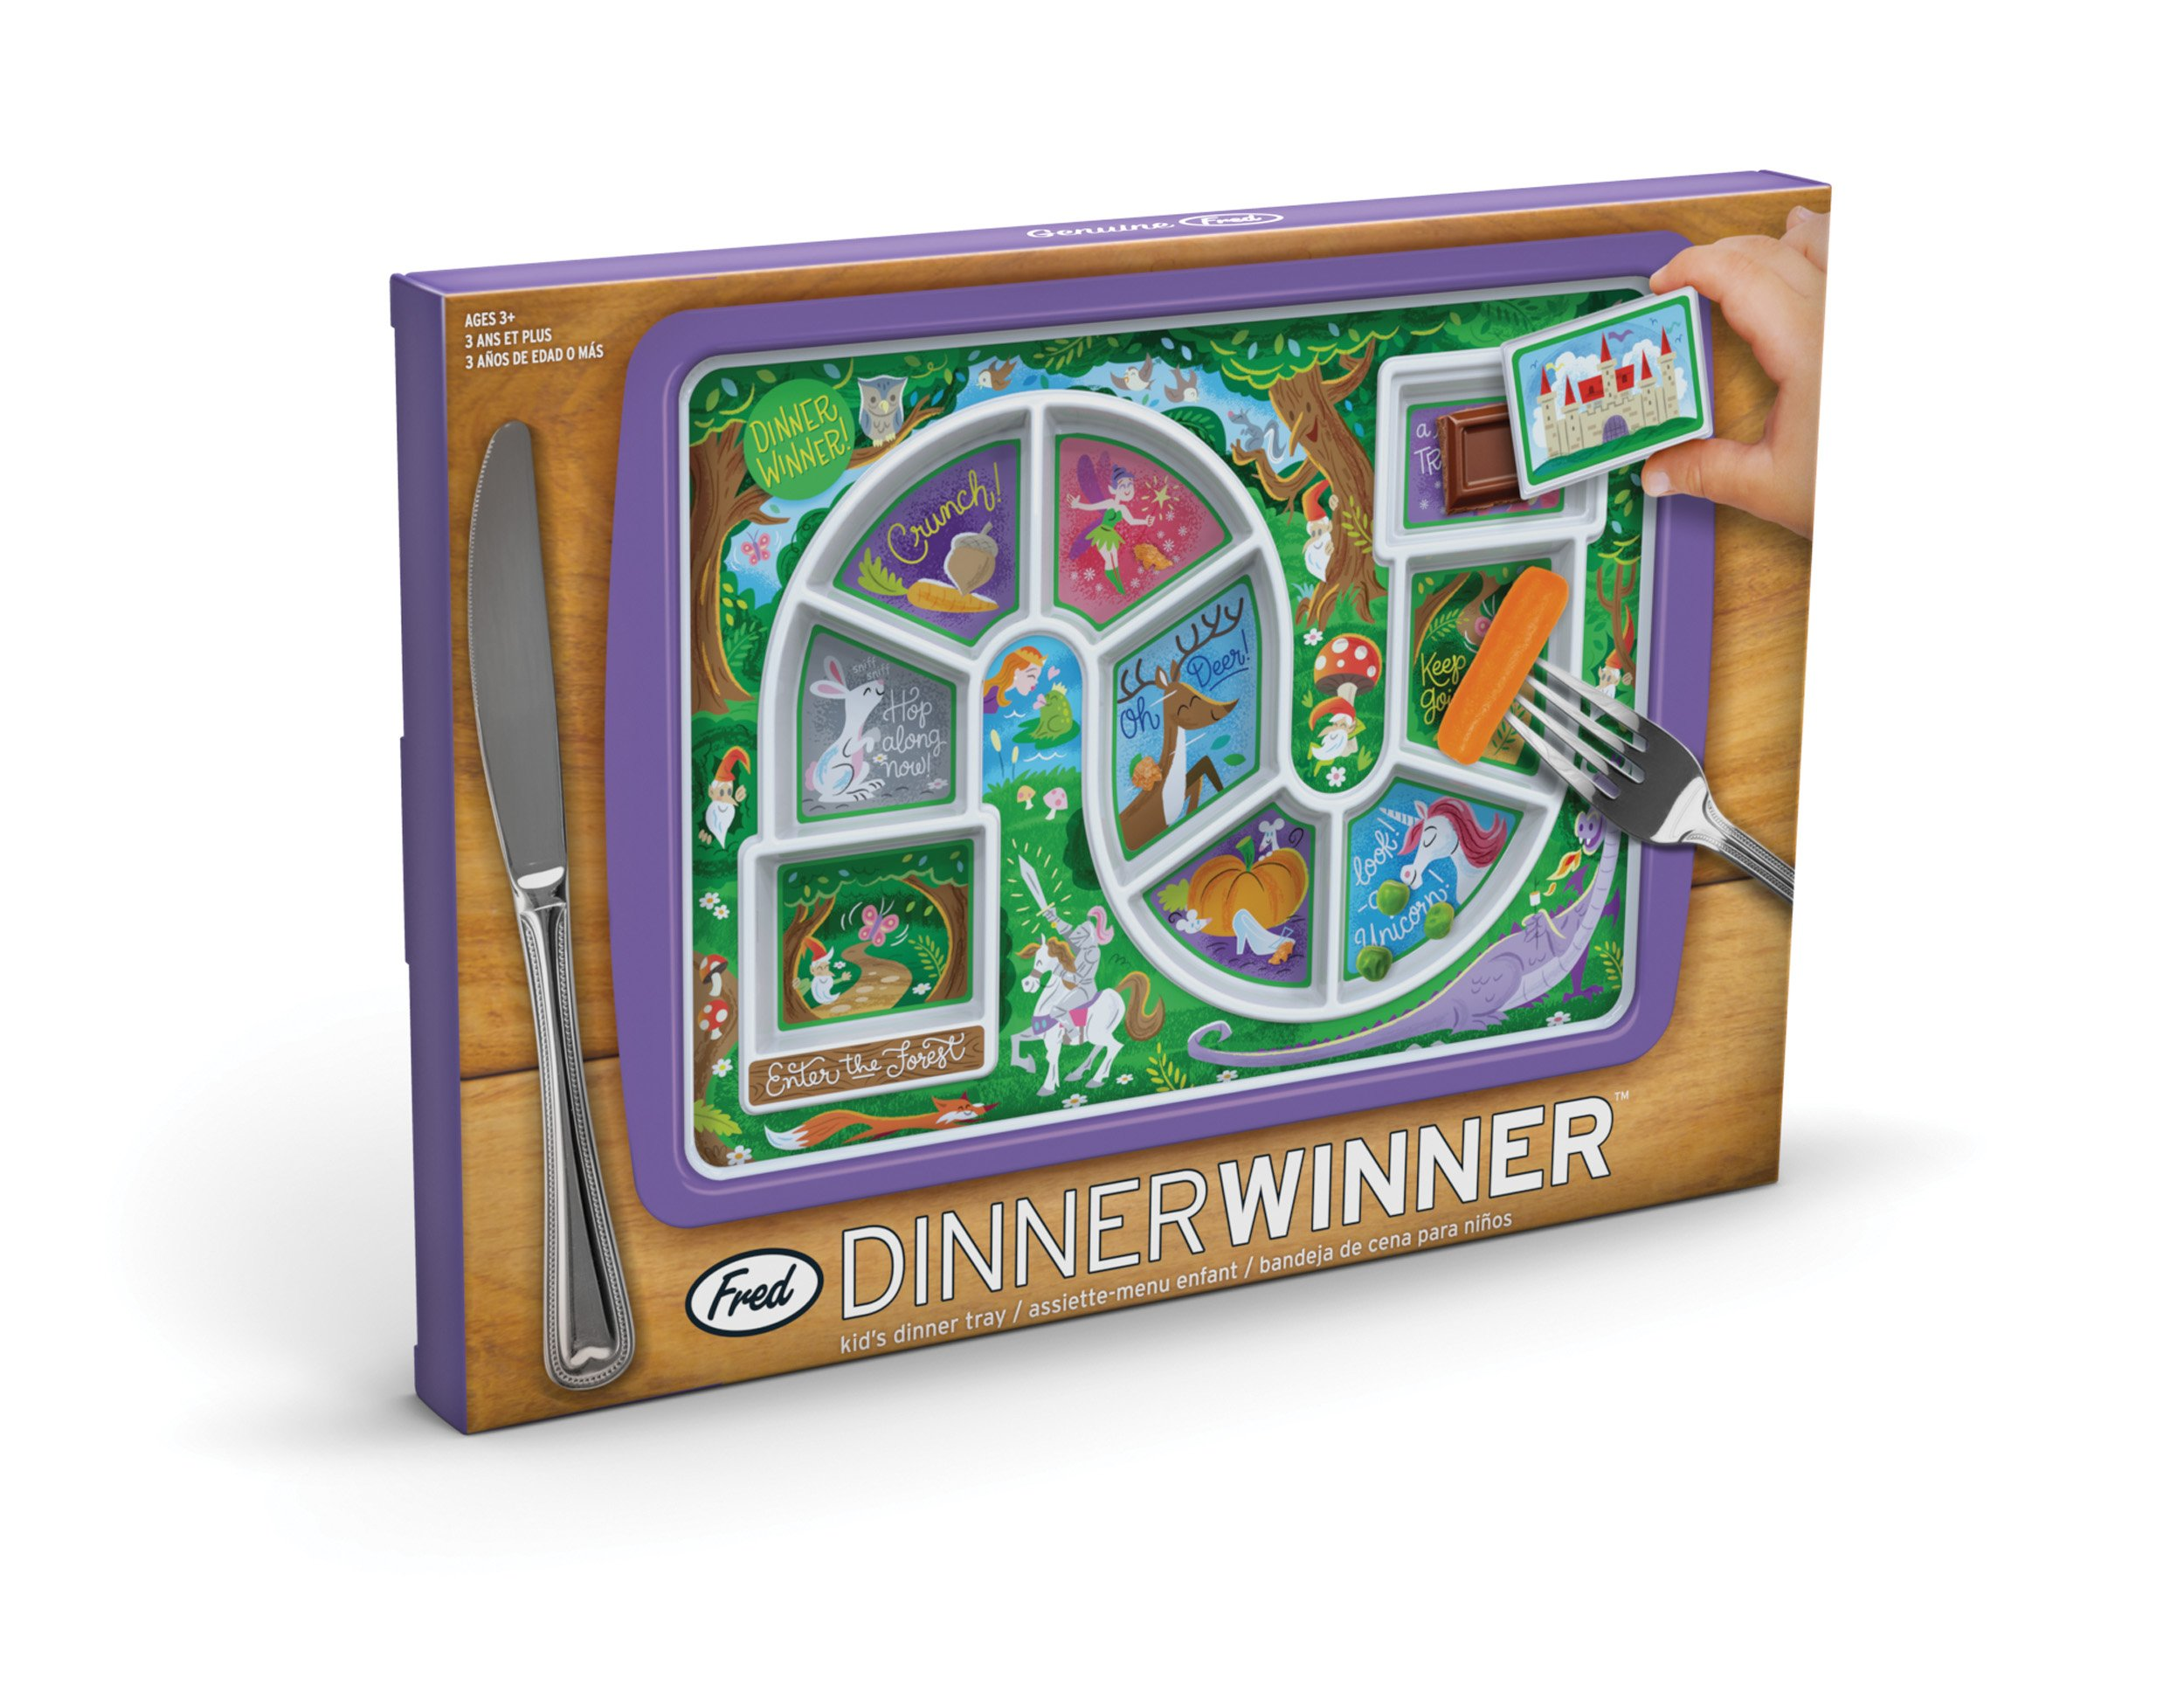 Fred DINNER WINNER Kids' Dinner Tray, Enchanted Forest by Fred & Friends (Image #3)